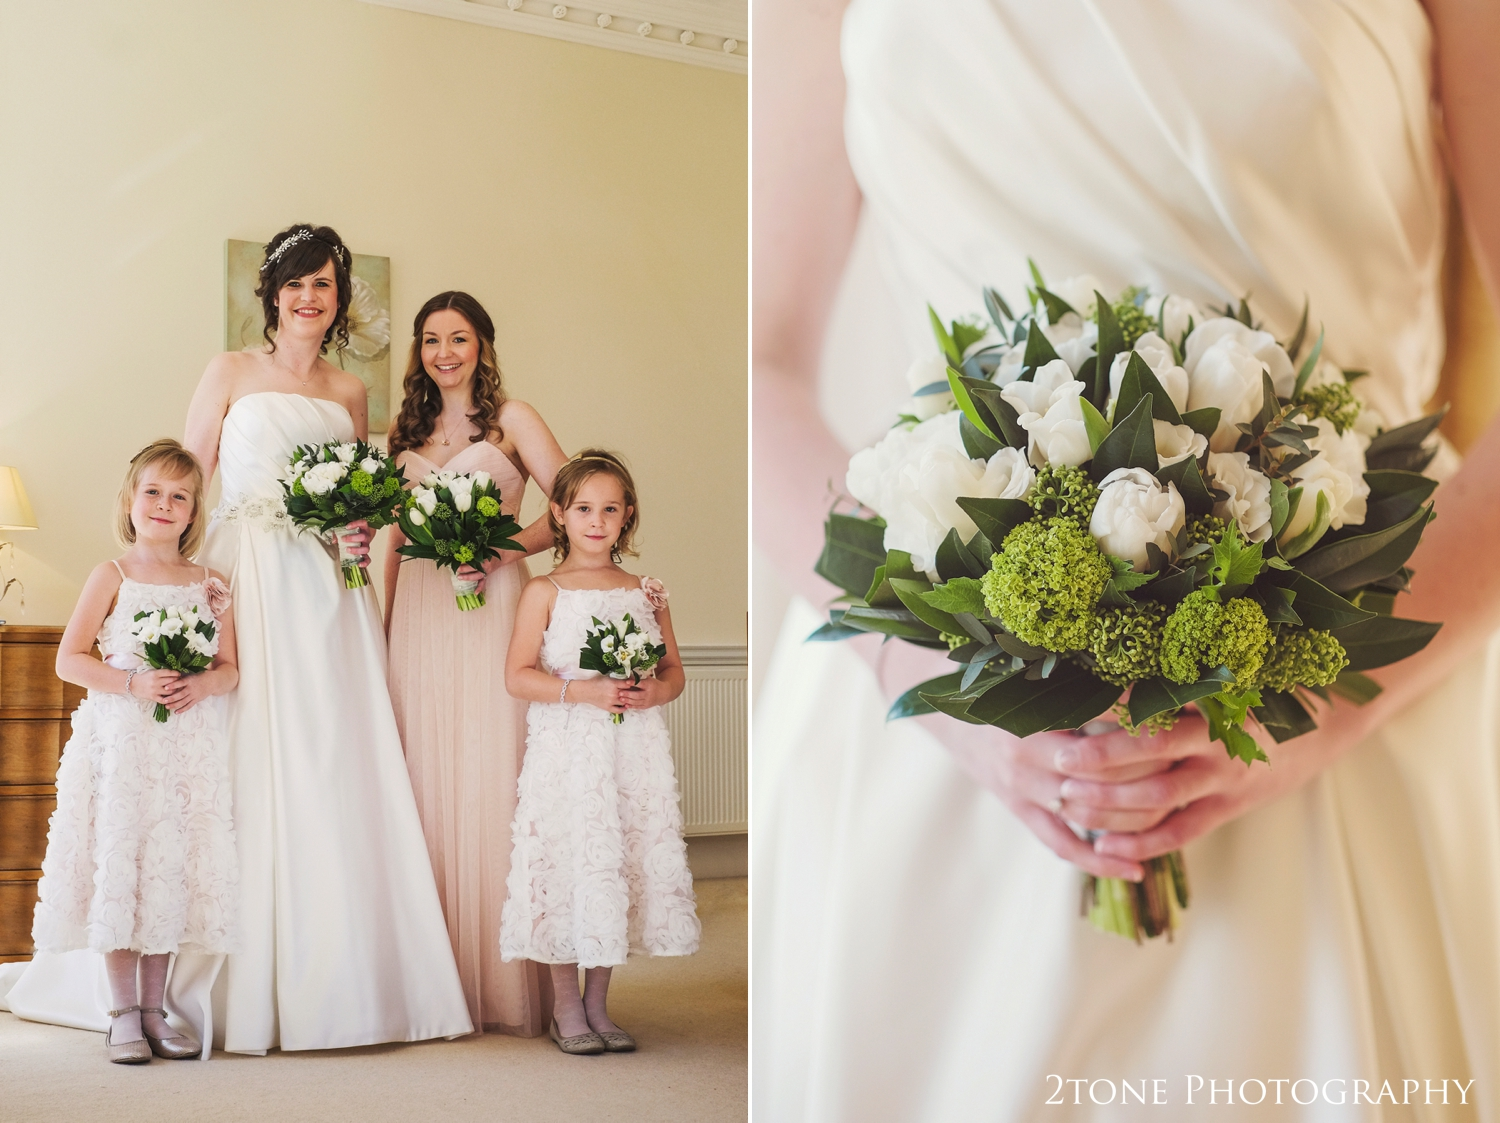 The green and white colours of the bouquets worked beautifully with the very pale blush and peach tones of the bridesmaids dresses.